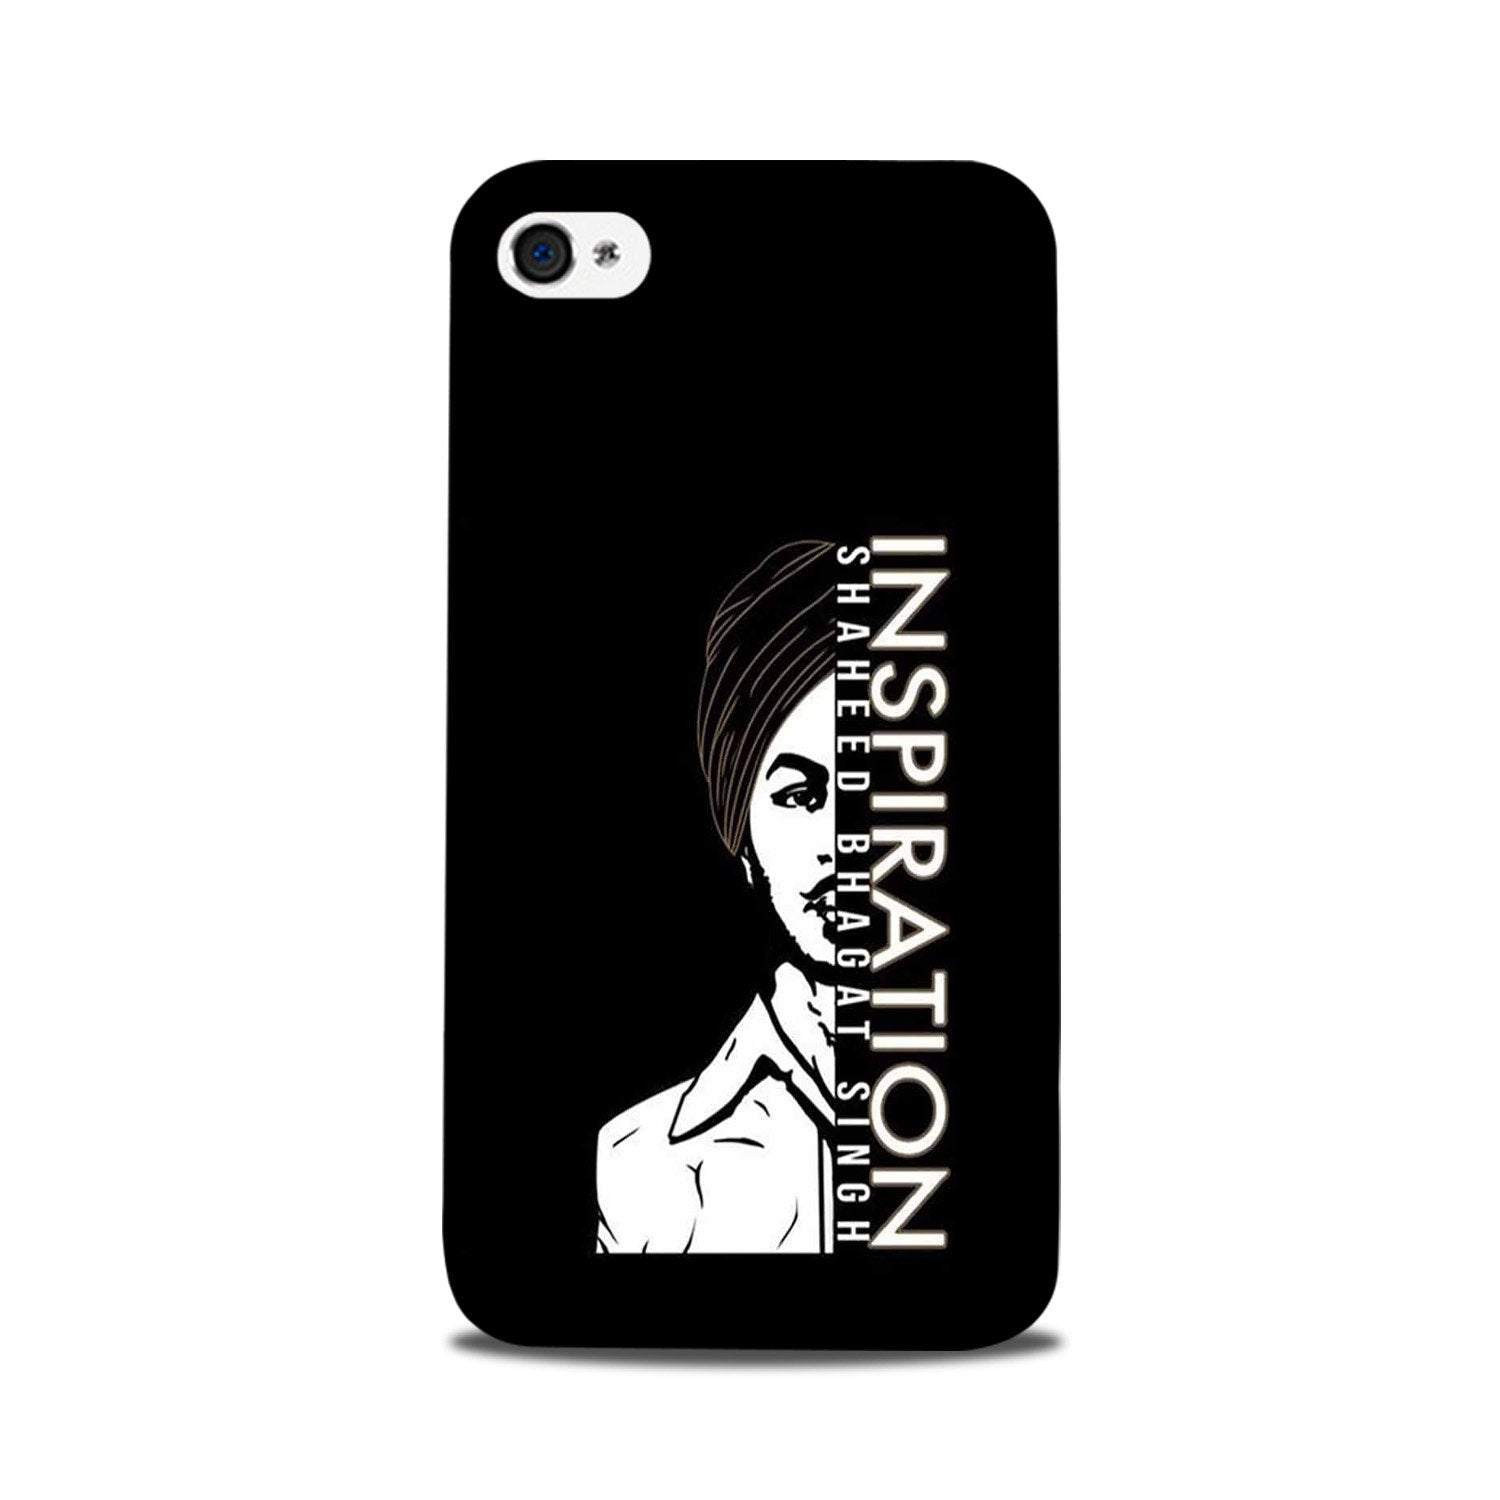 Bhagat Singh Mobile Back Case for iPhone 5/ 5s  (Design - 329)